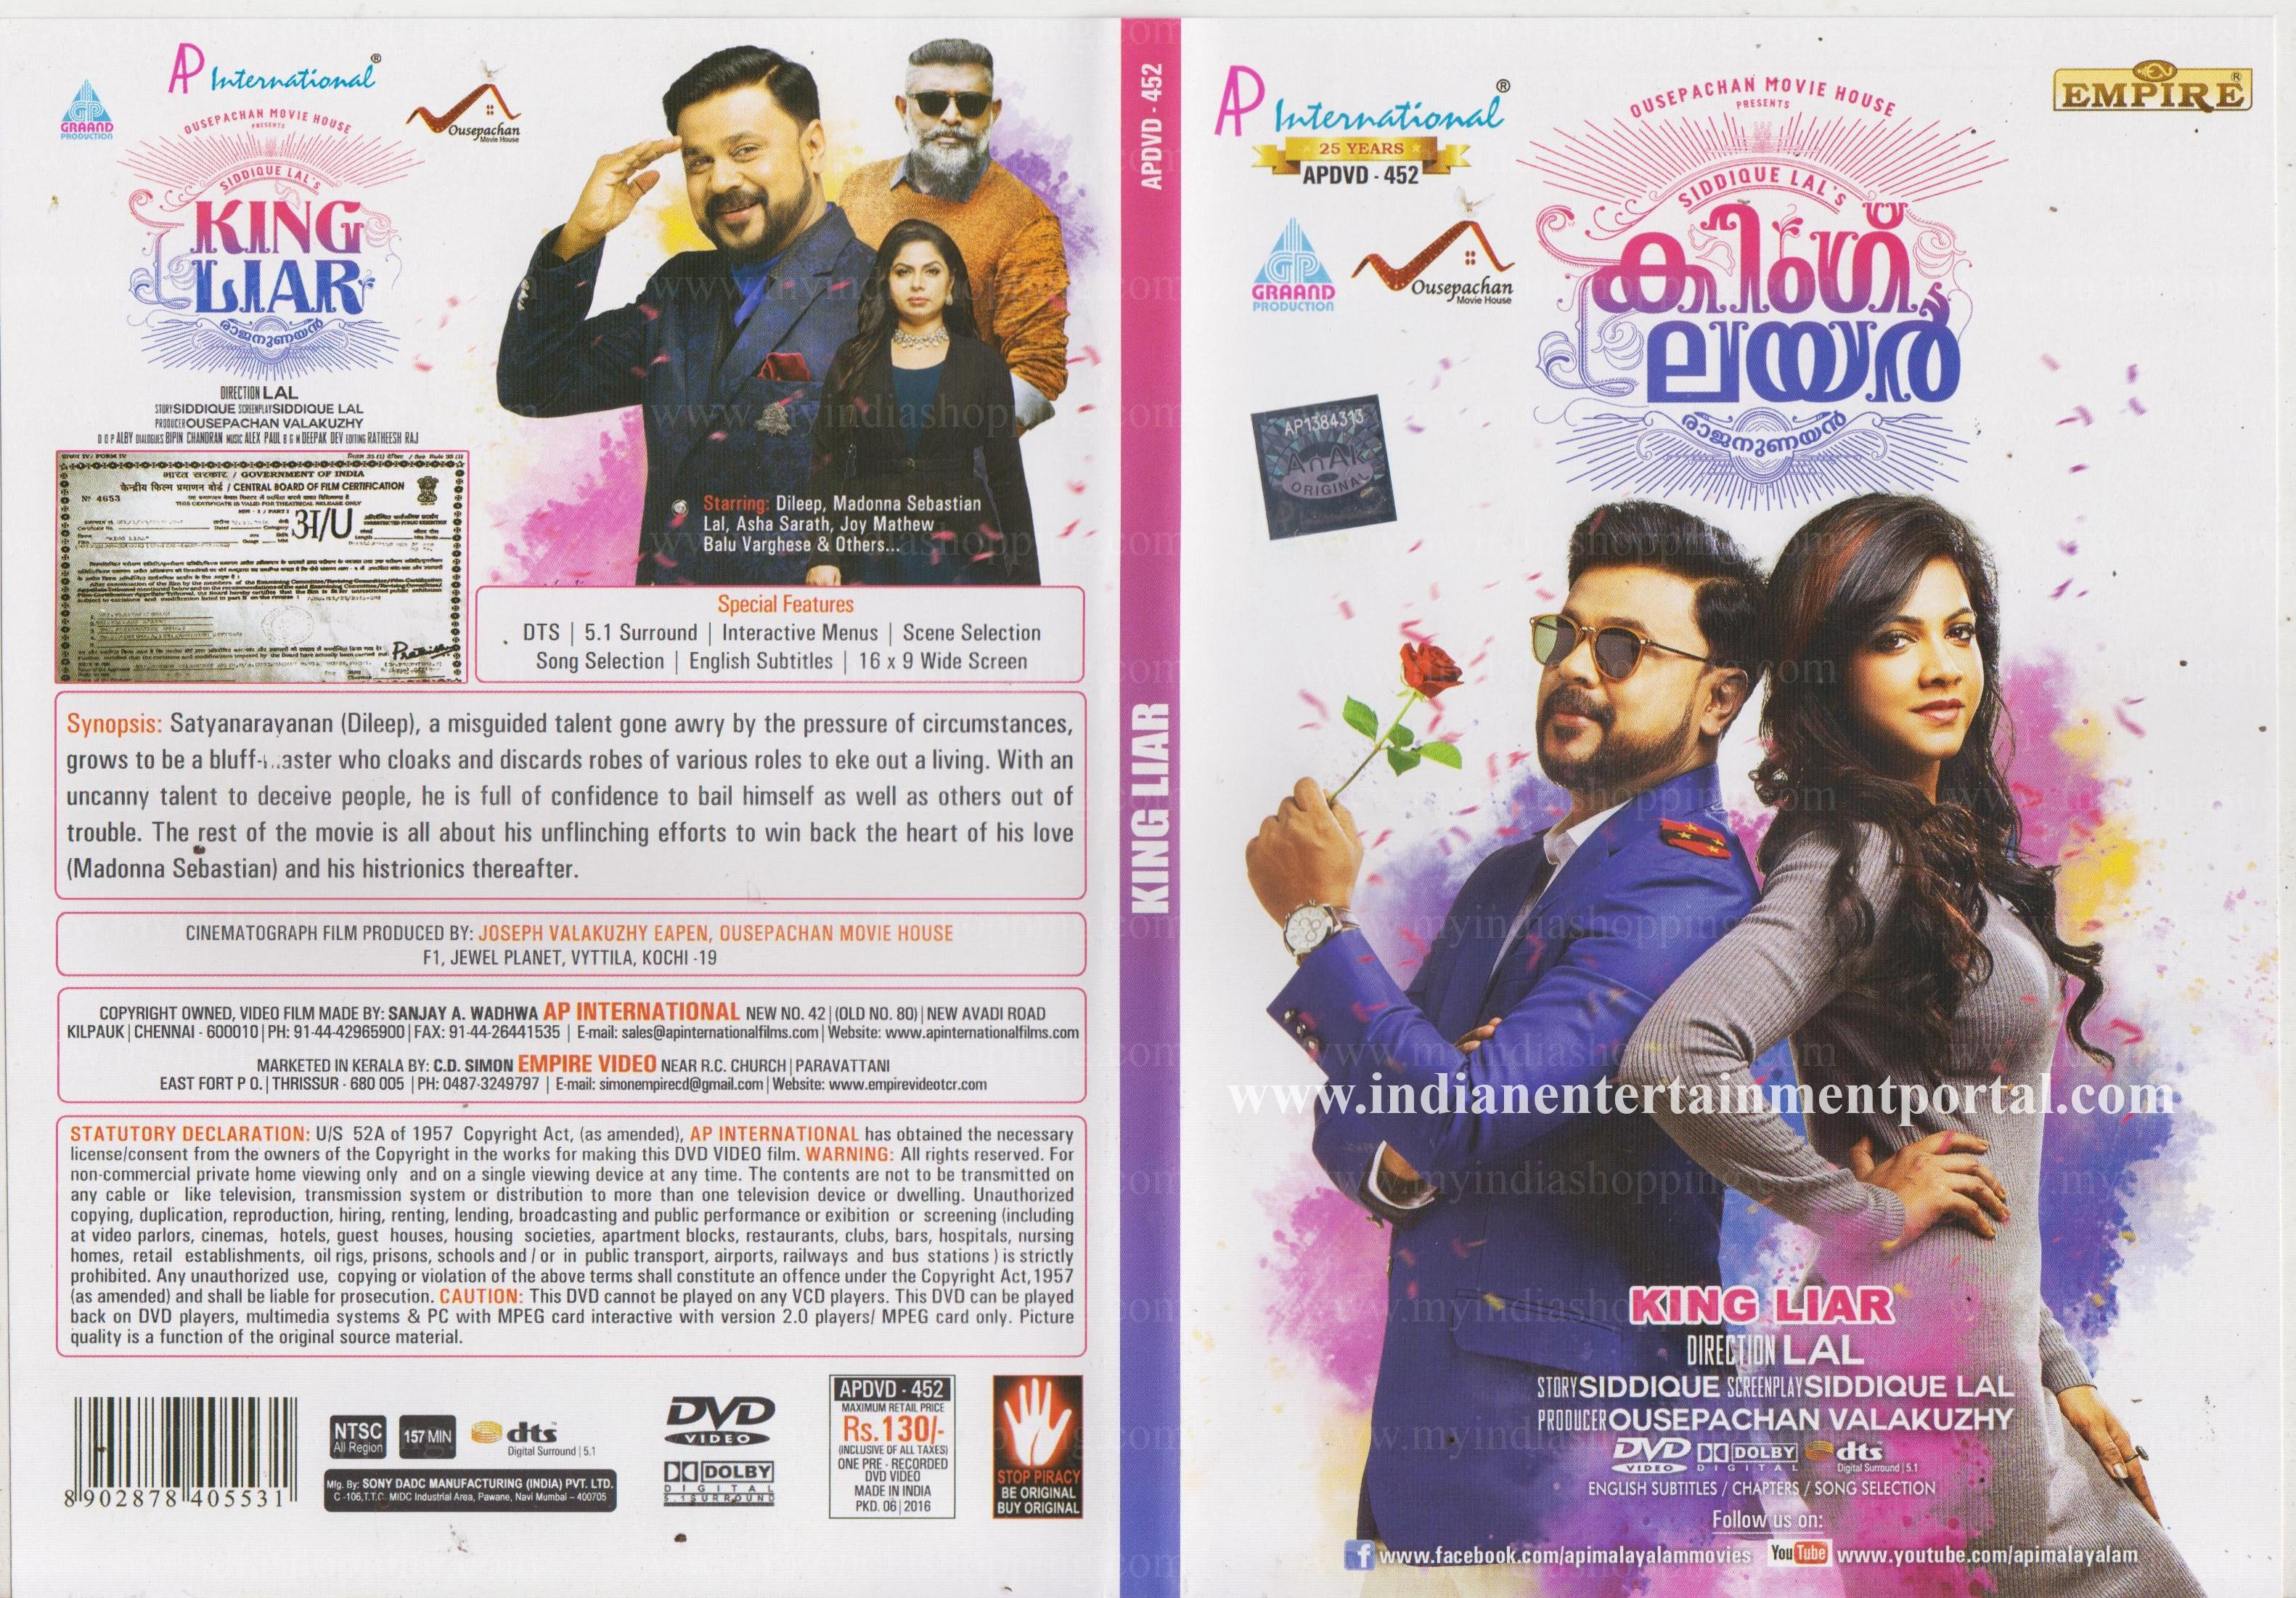 KING LIAR DVD & VCD Released from AP INTERNATIONAL